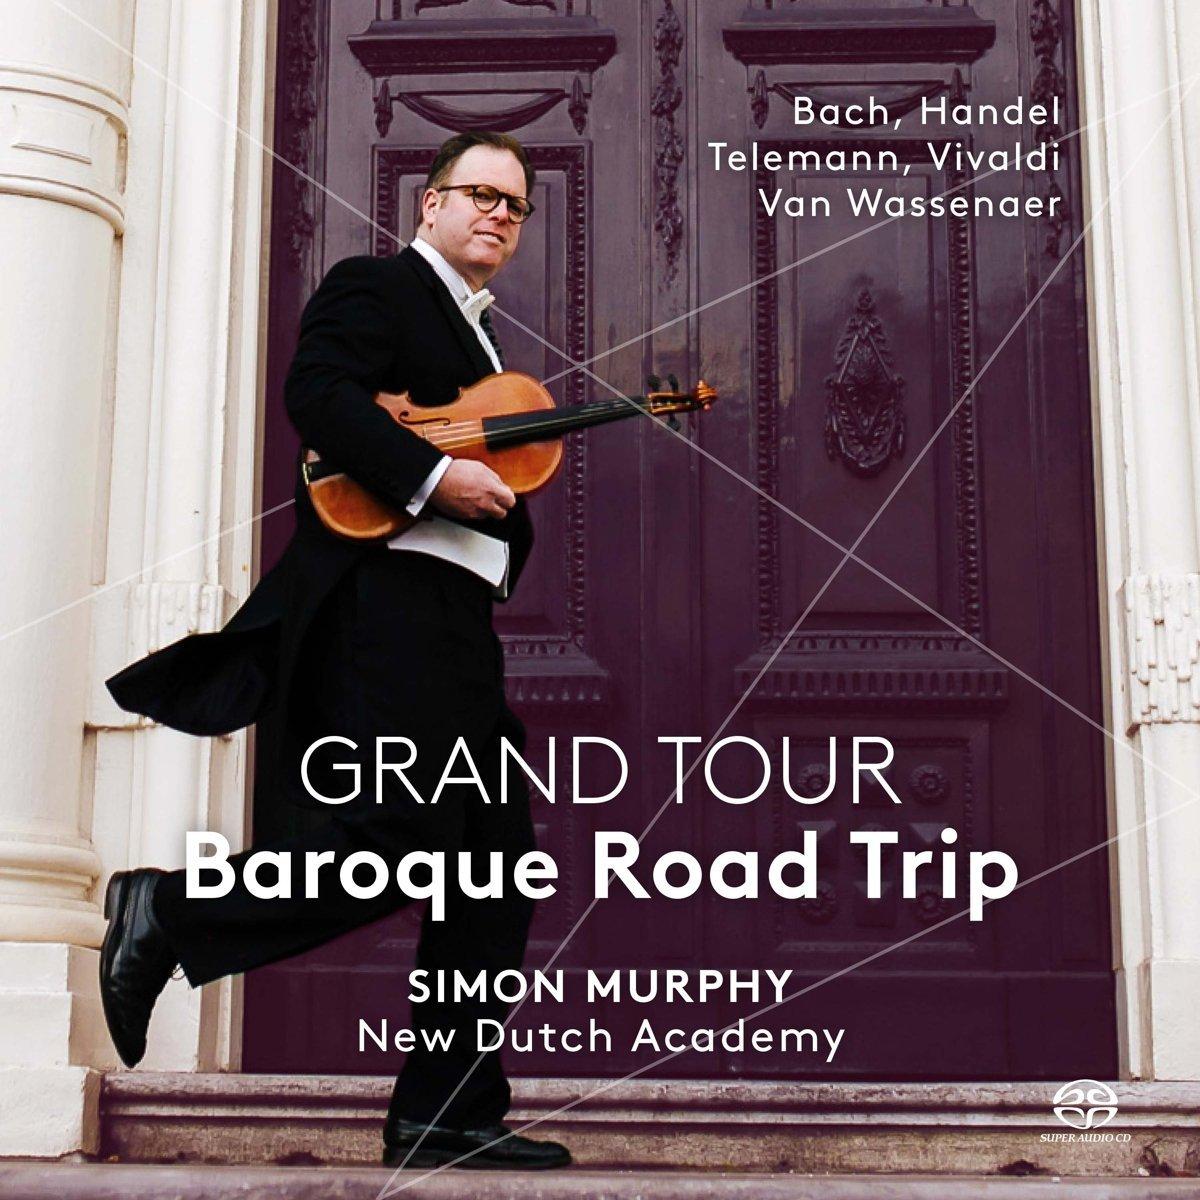 Grand Tour - Baroque Road Trip: New Dutch Academy